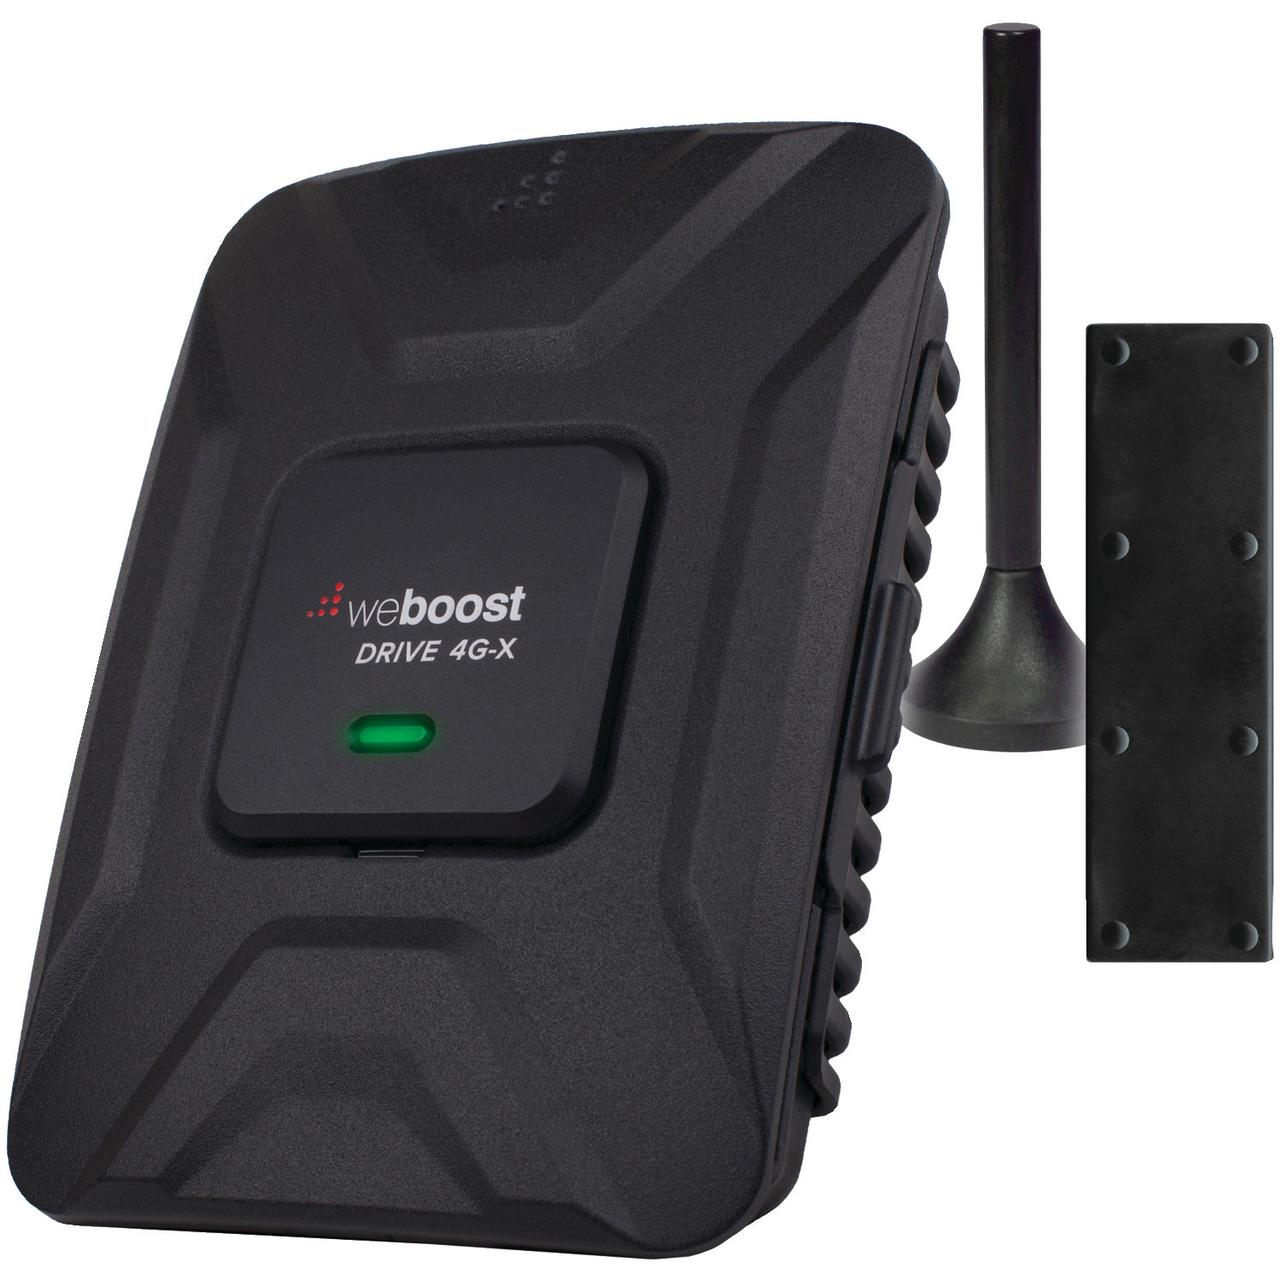 weBoost 470510 Drive 4G-X Cellular Signal Booster